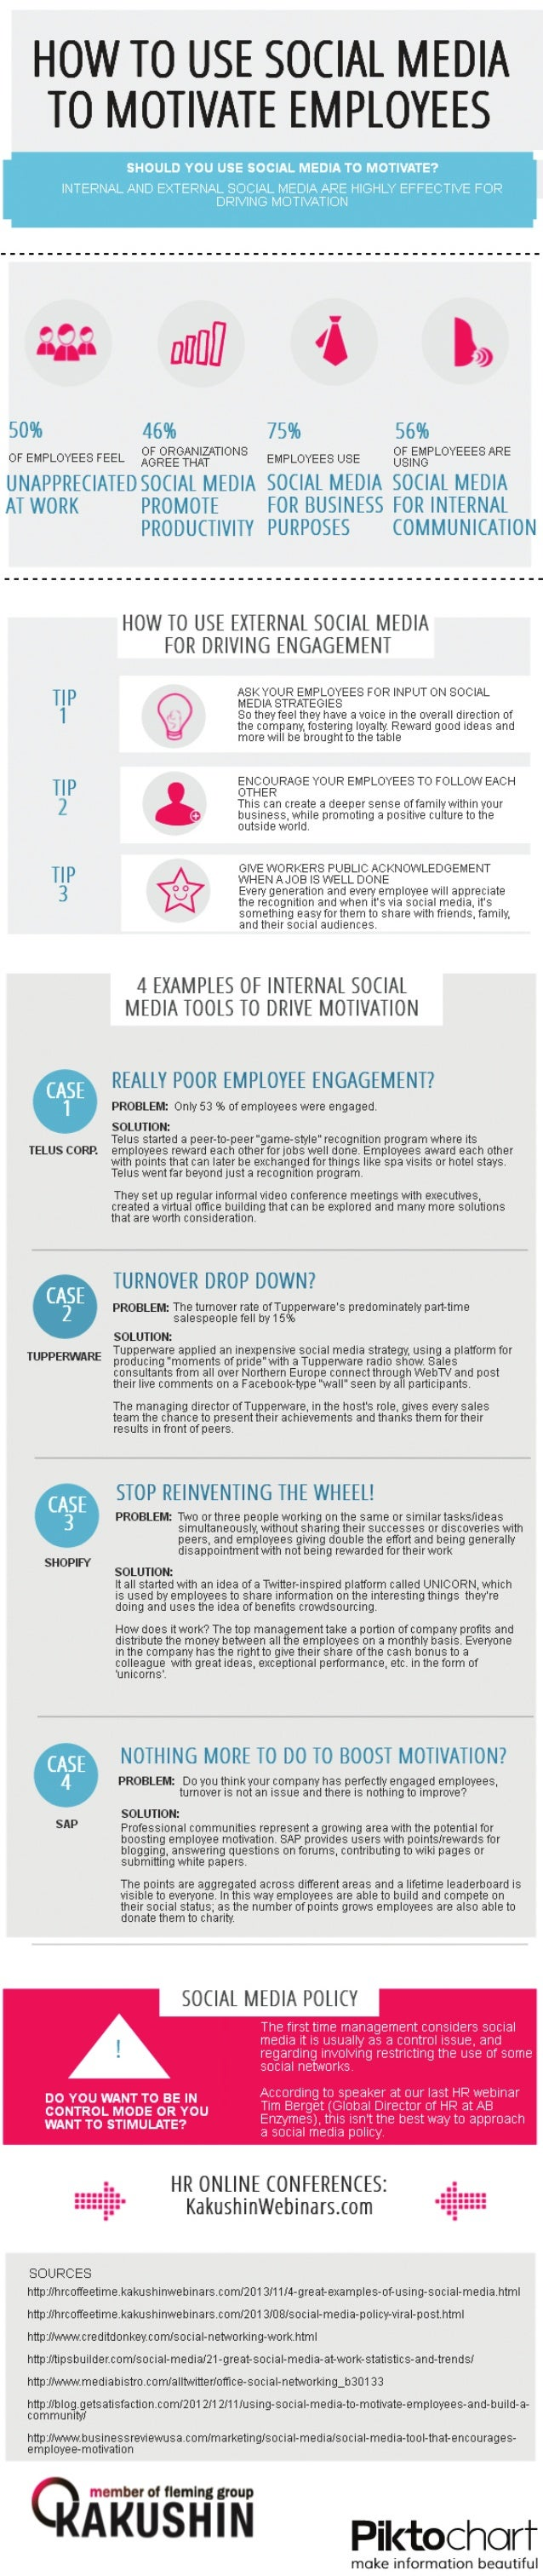 How to Use Social Mdia to Motivate Employees Infographic